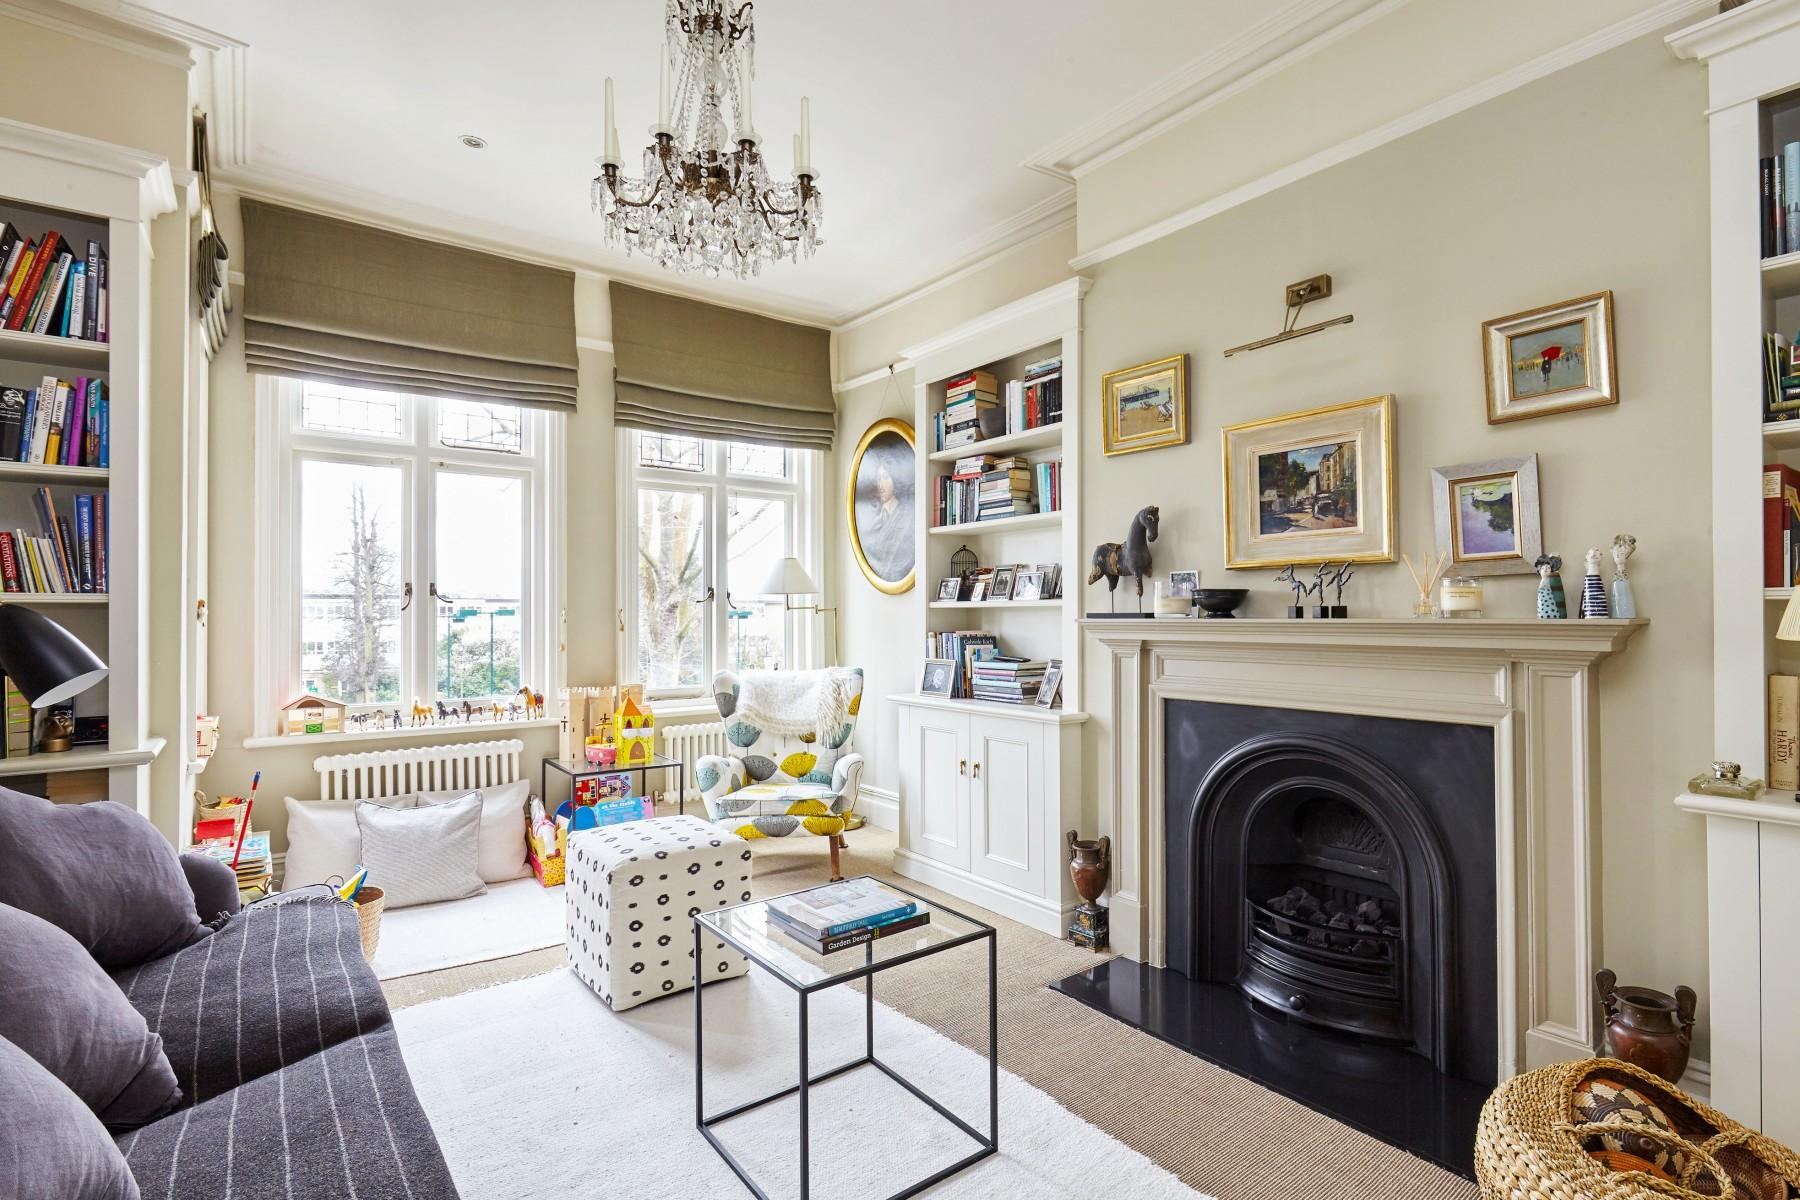 Property Image 1 - Exclusive Fulham Home by Putney Bridge